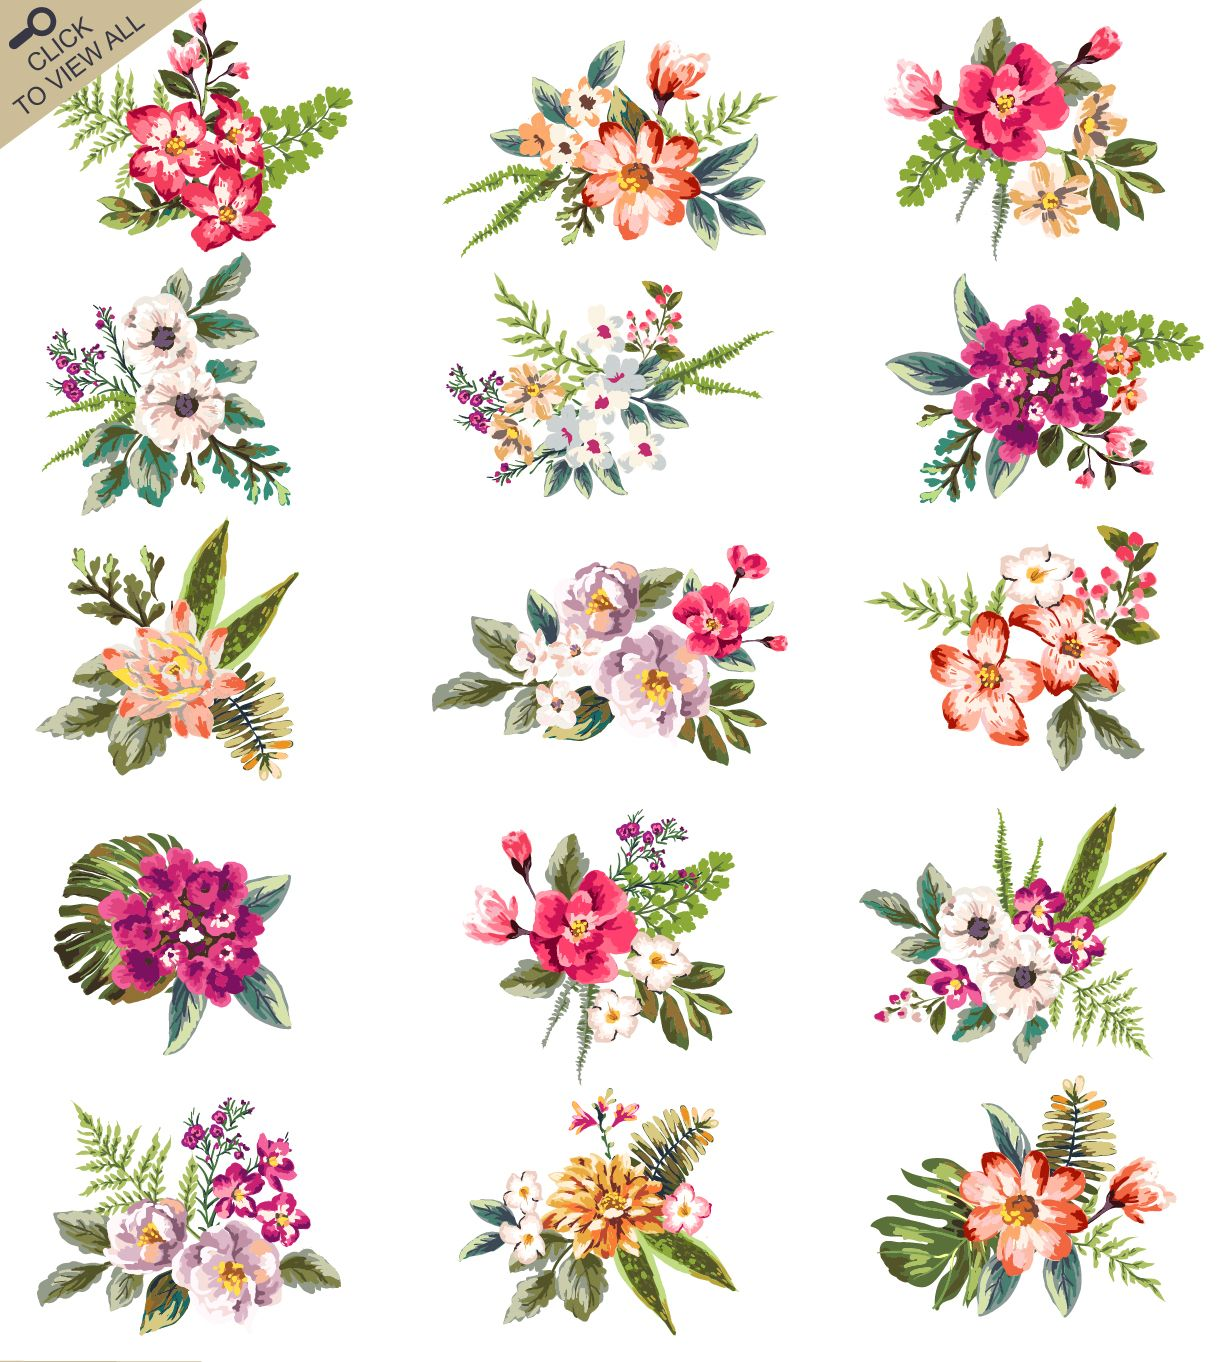 Hand drawn flower collection vol2 hand drawn flowers draw hand drawn flower collection vol2 mightylinksfo Image collections